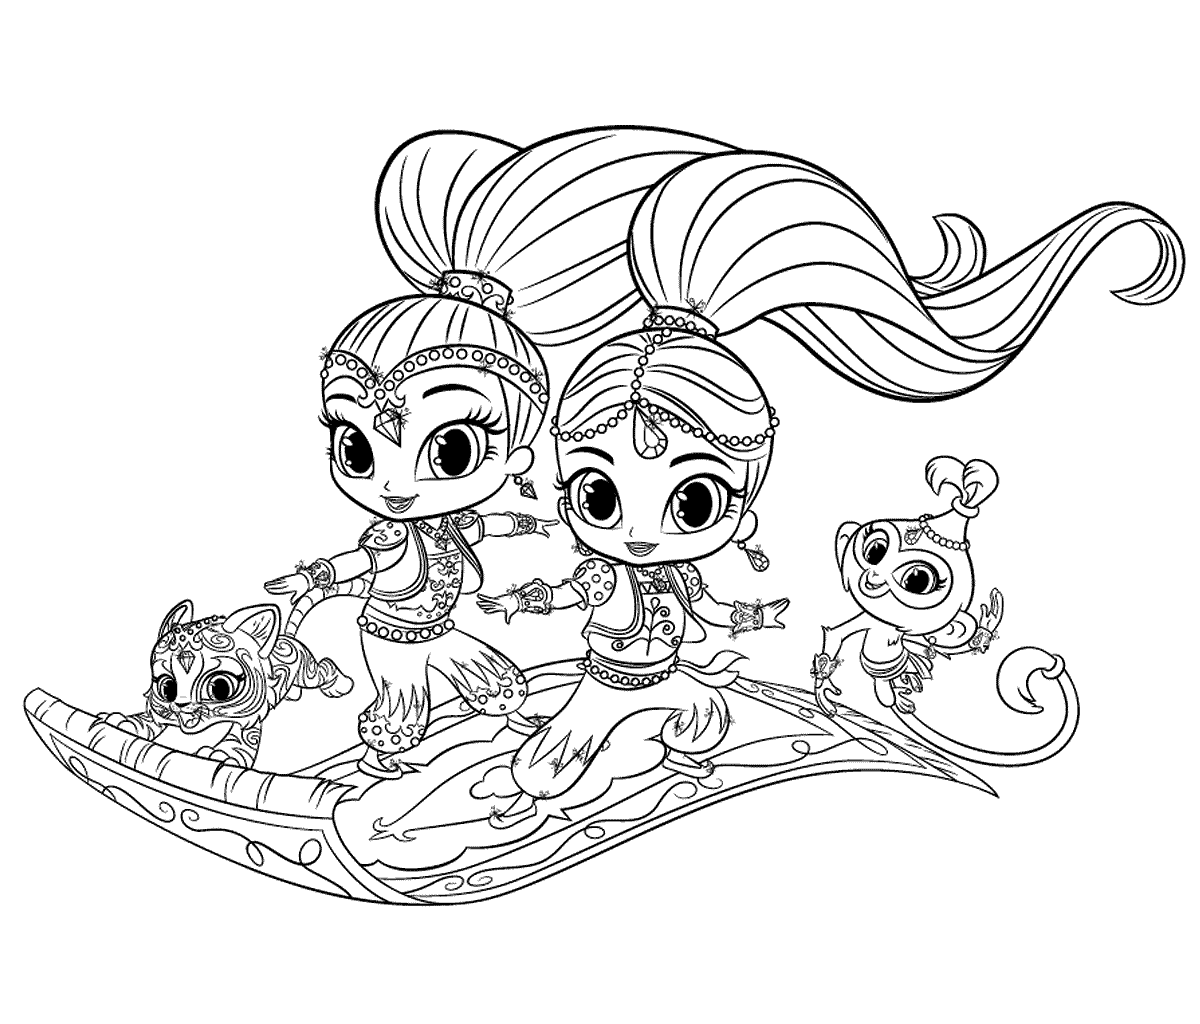 12 Free Printable Shimmer and Shine Coloring Pages - 1NZA